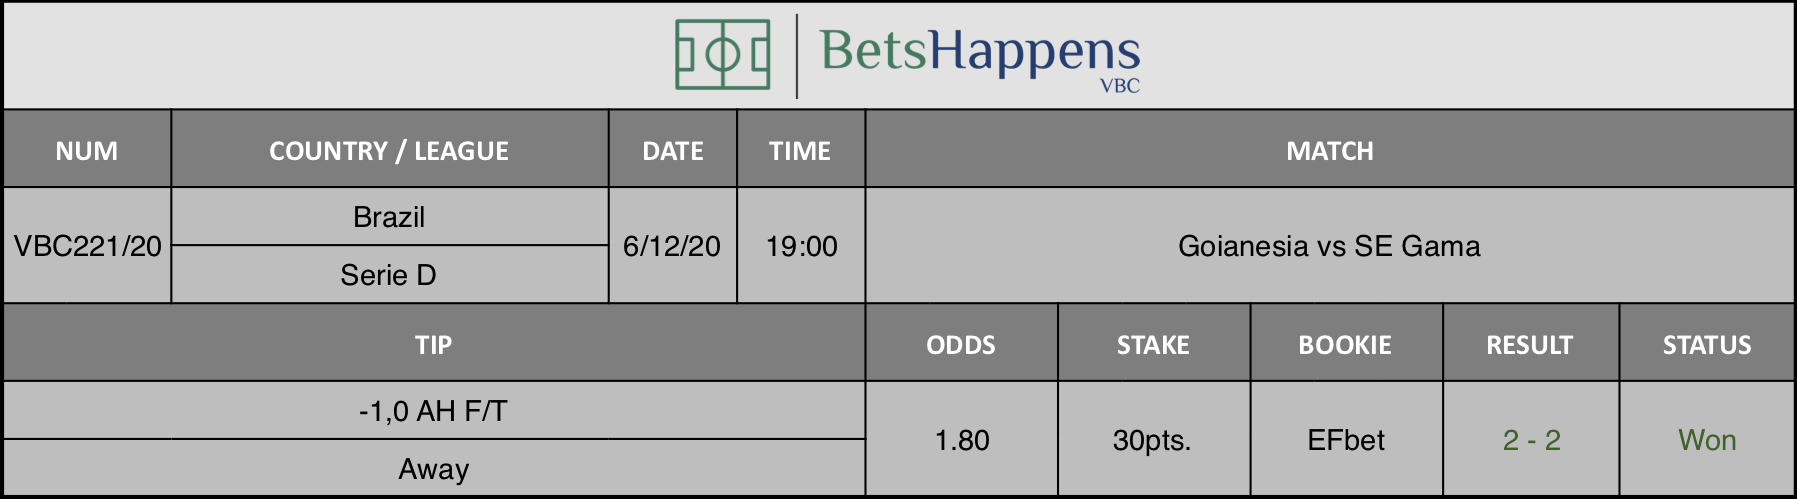 Results of our tip for the Goianesia vs SE Gama match where -1,0 AH F/T Away is recommended.